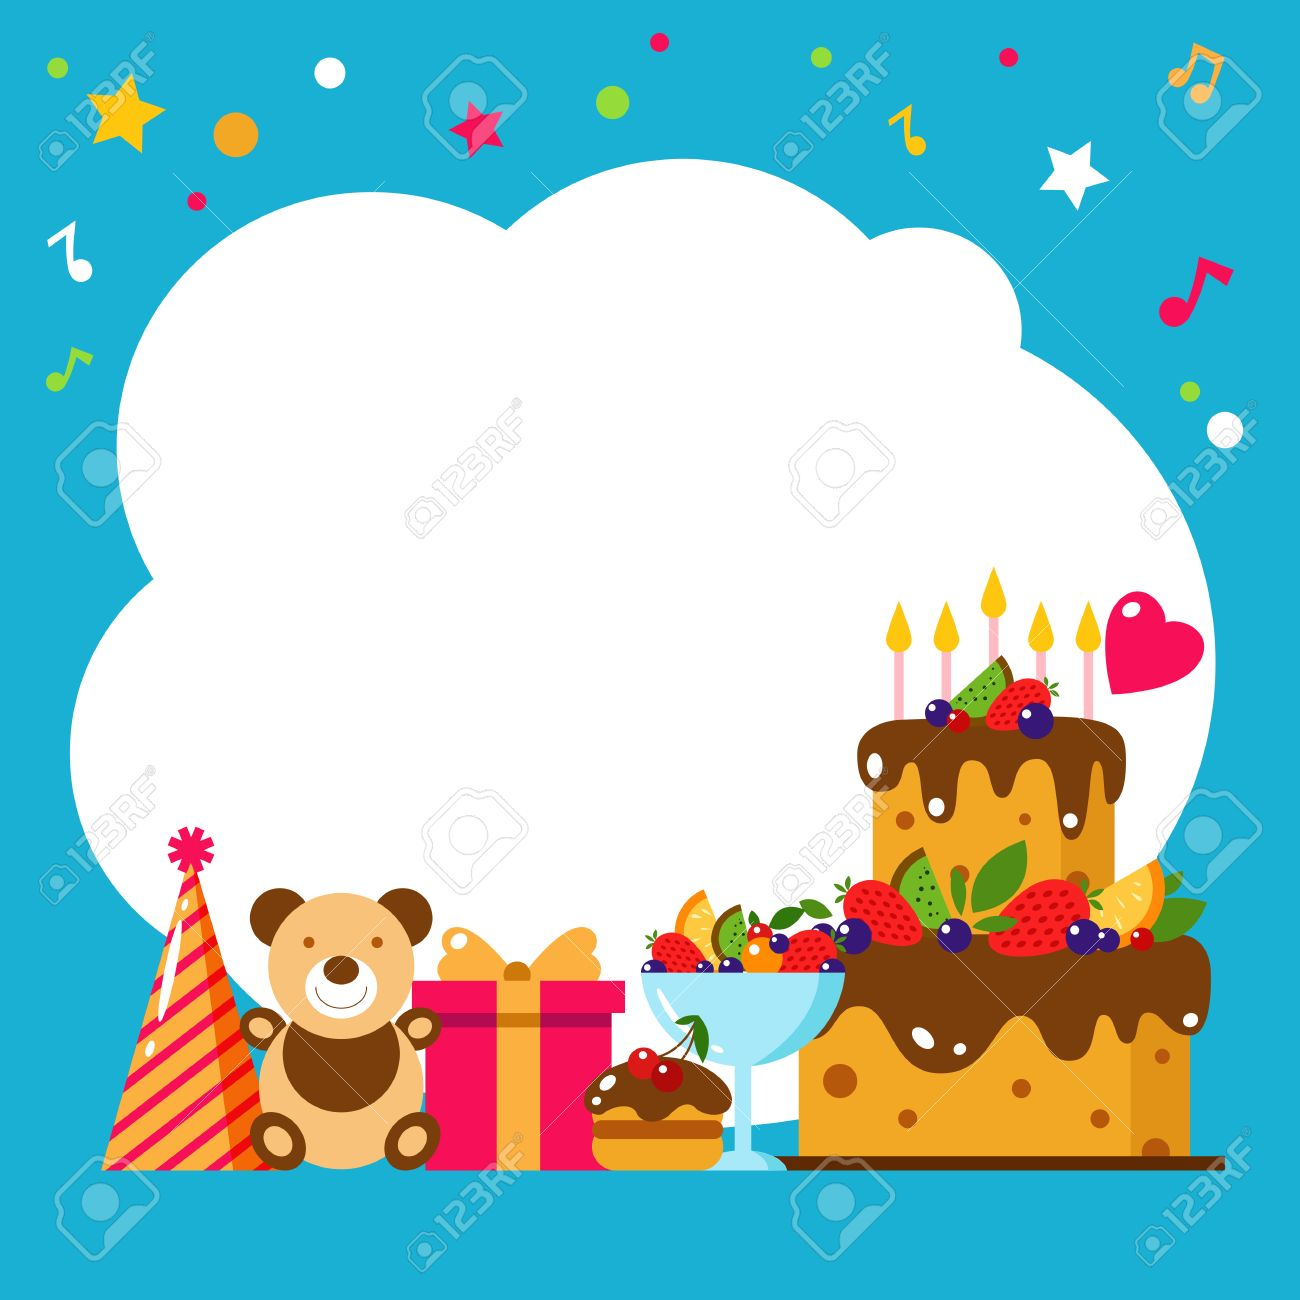 Happy birthday card flat vector illustration kids party design happy birthday card flat vector illustration kids party design elements cake gift bookmarktalkfo Gallery